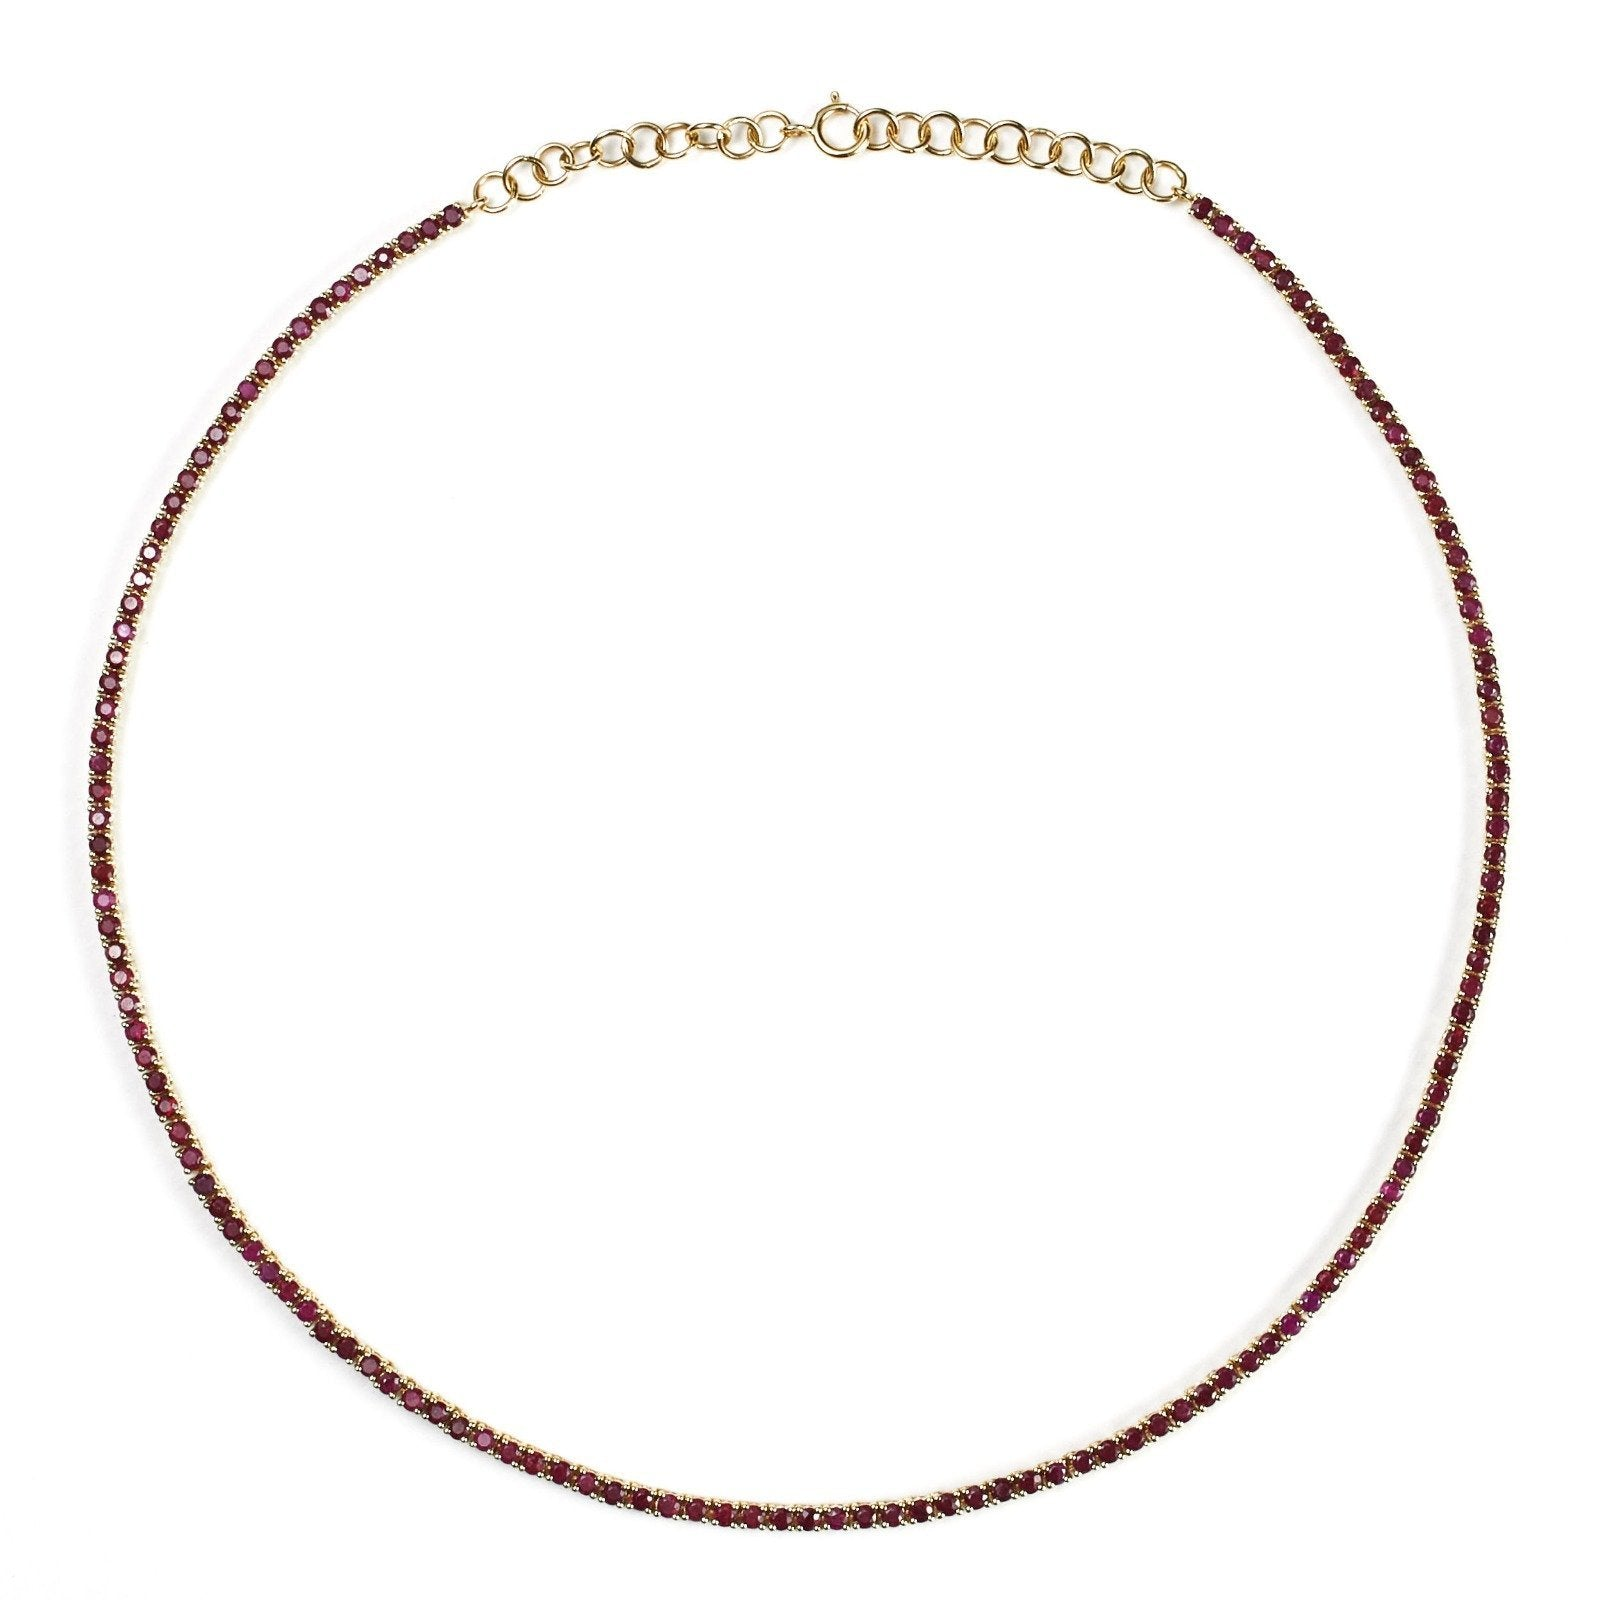 14K Gold Ruby Tennis Necklace - Alexis Jae